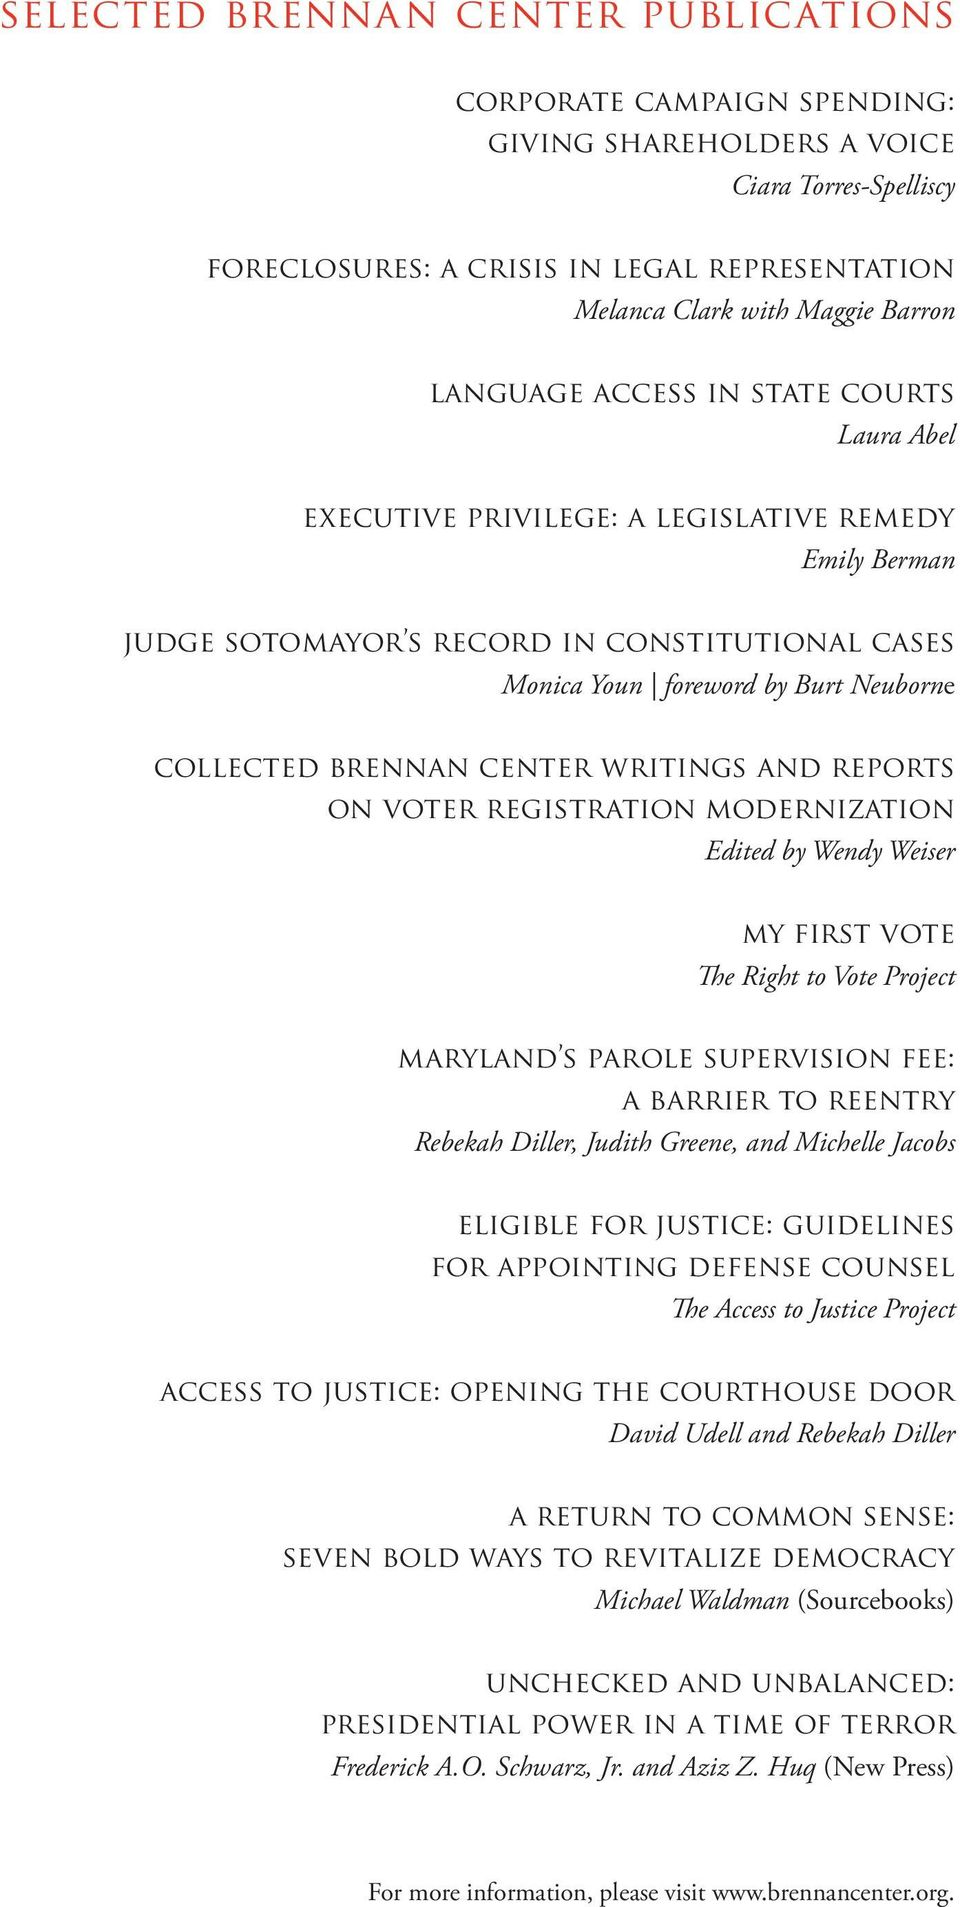 brennan center writings and reports on voter registration modernization Edited by Wendy Weiser my first vote The Right to Vote Project maryland s parole supervision fee: a barrier to reentry Rebekah